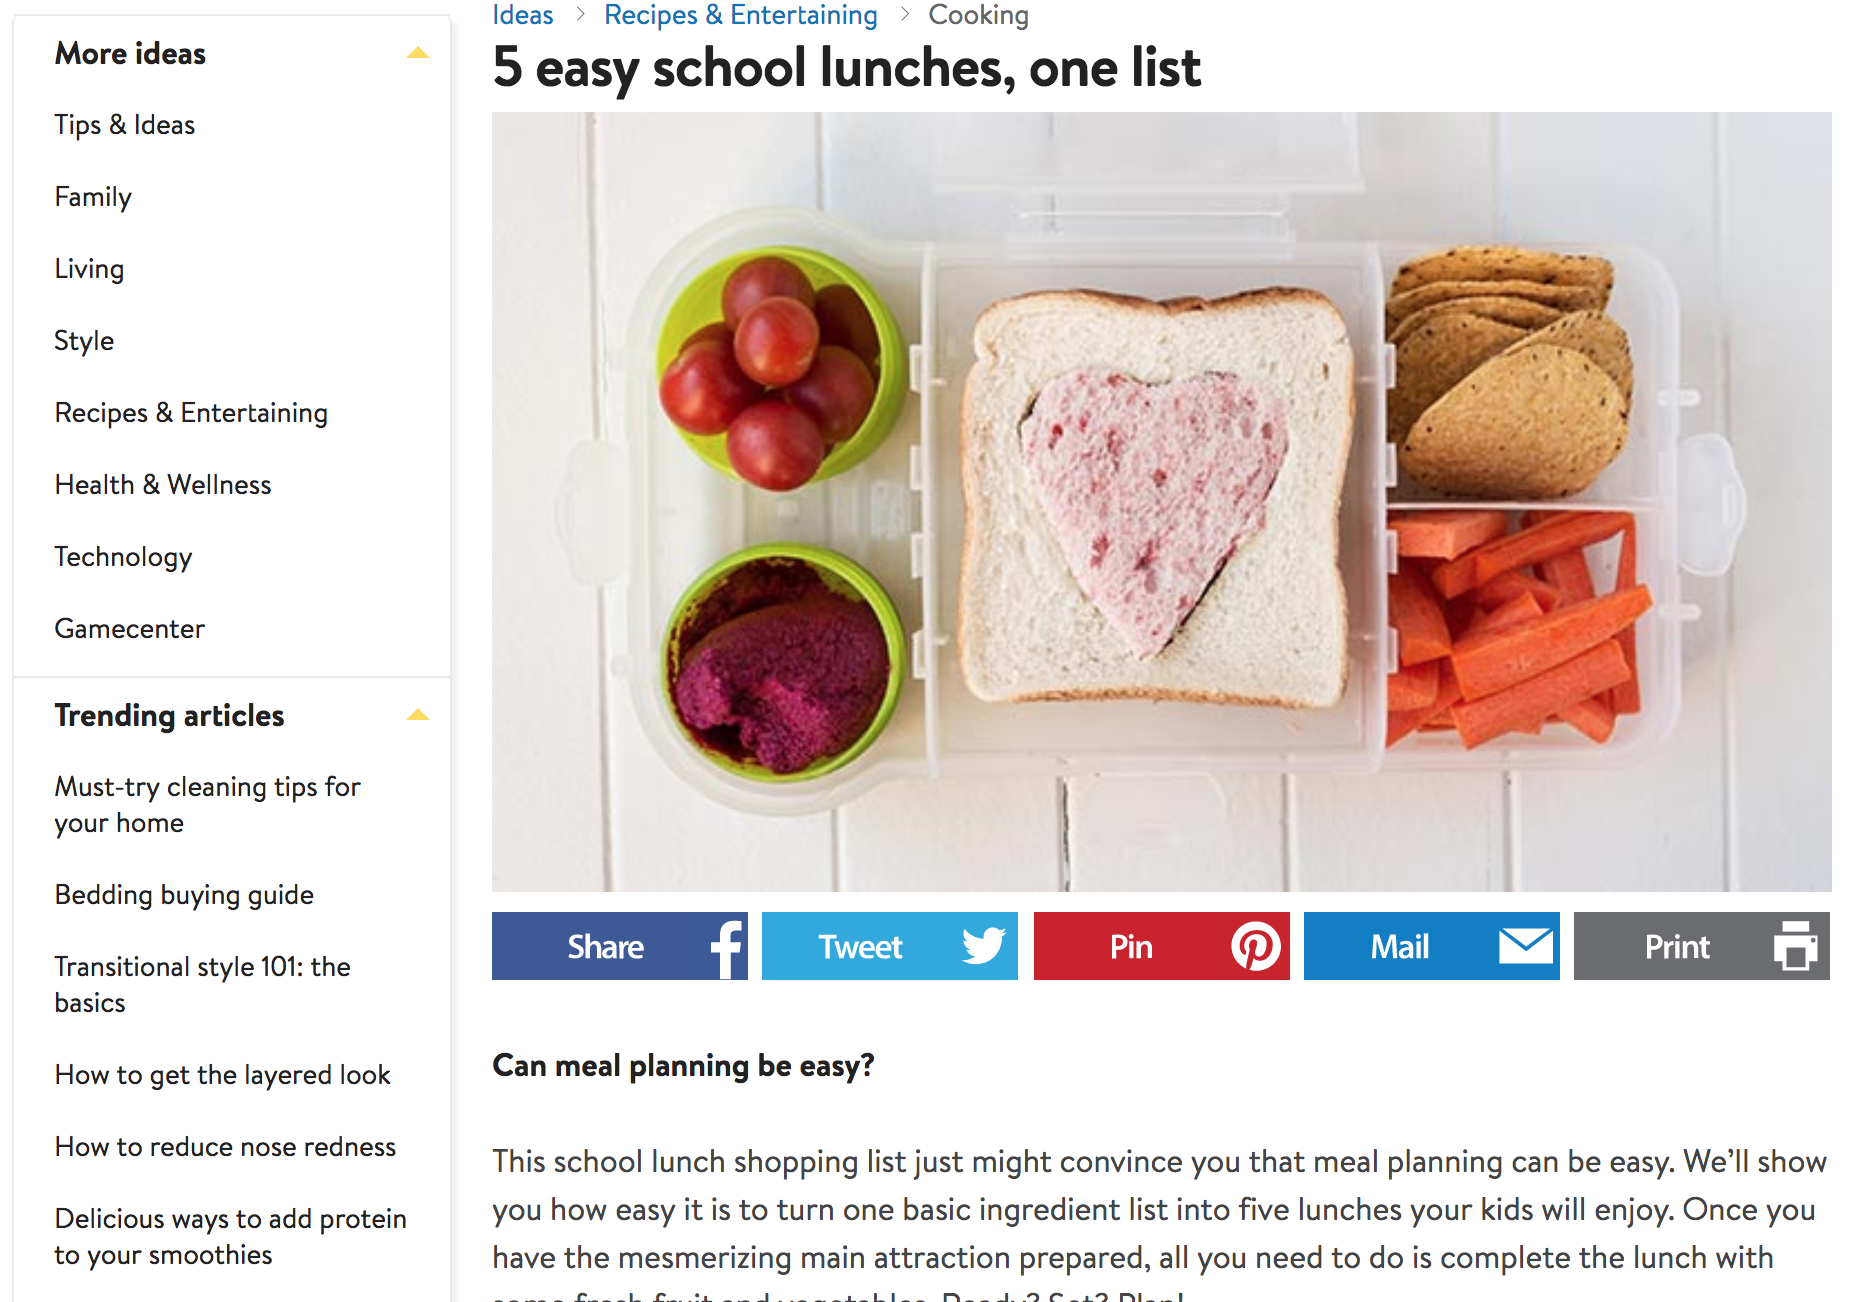 Screenshot showing content on school lunches